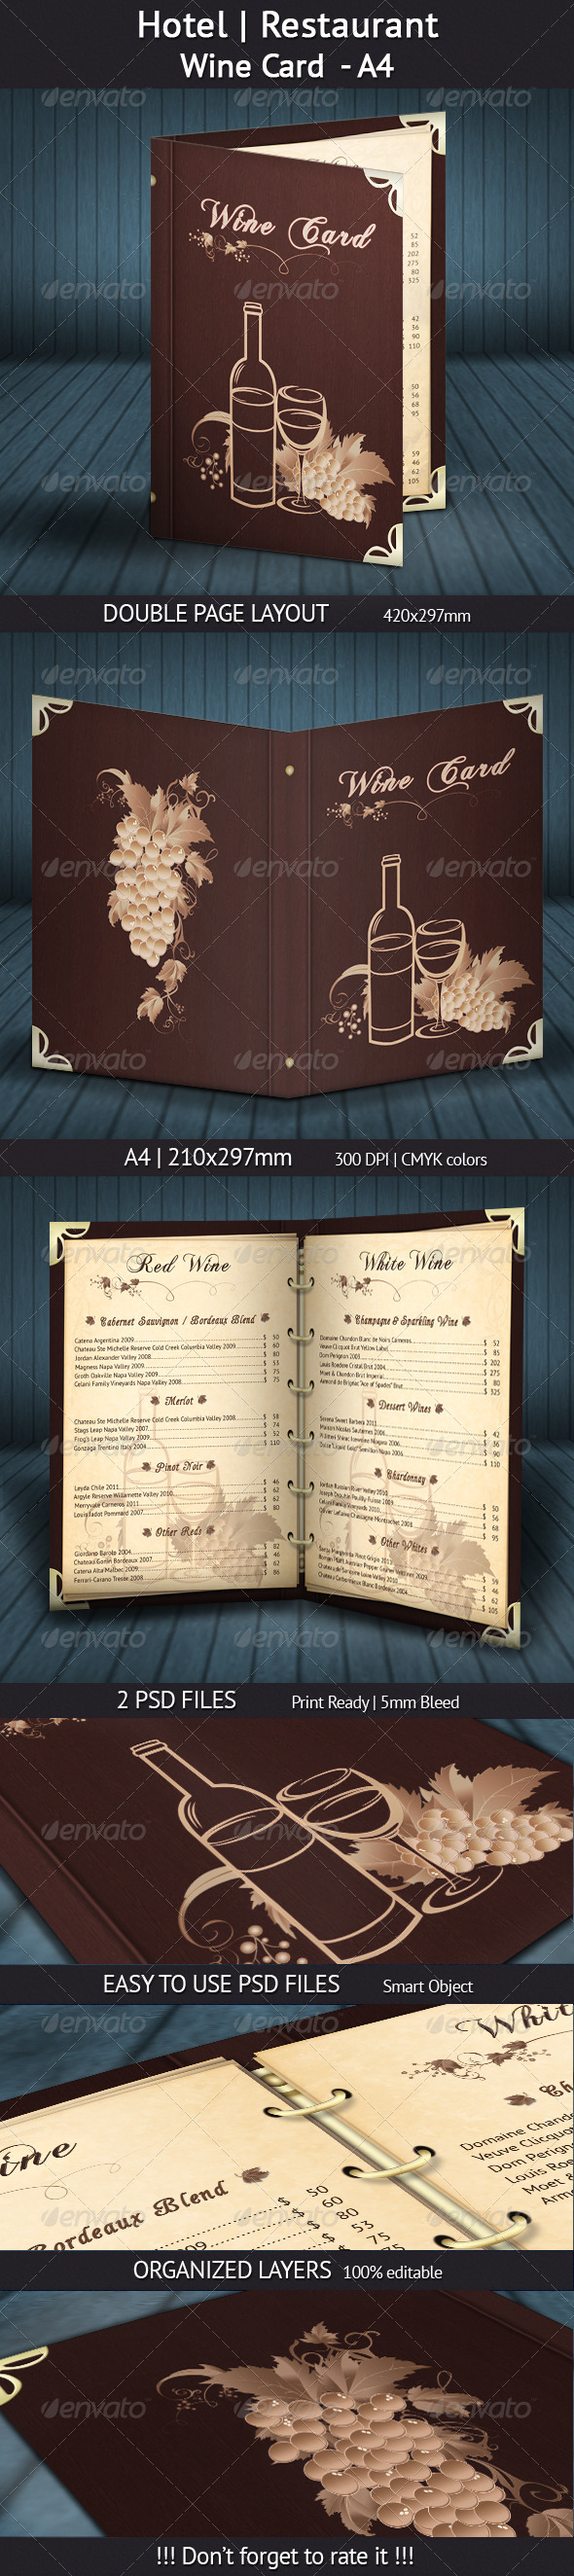 GraphicRiver Hotel Restaurant Wine Card A4 4536240